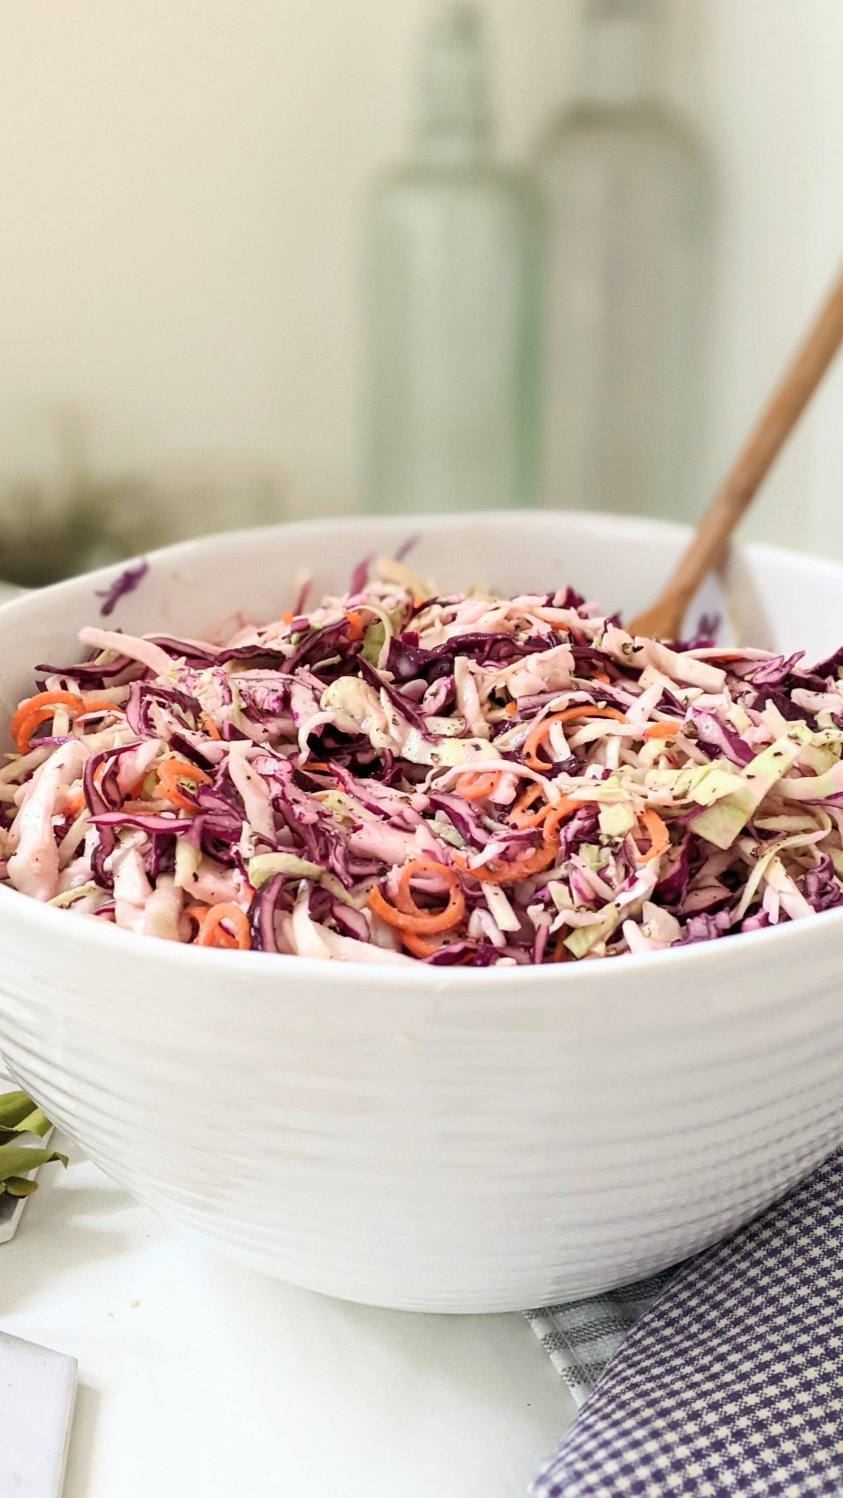 dairy free coleslaw recipe with red cabbage salad for summer bbq picnic side dishes gluten free potluck salads healthy recipes with red cabbage coleslaw